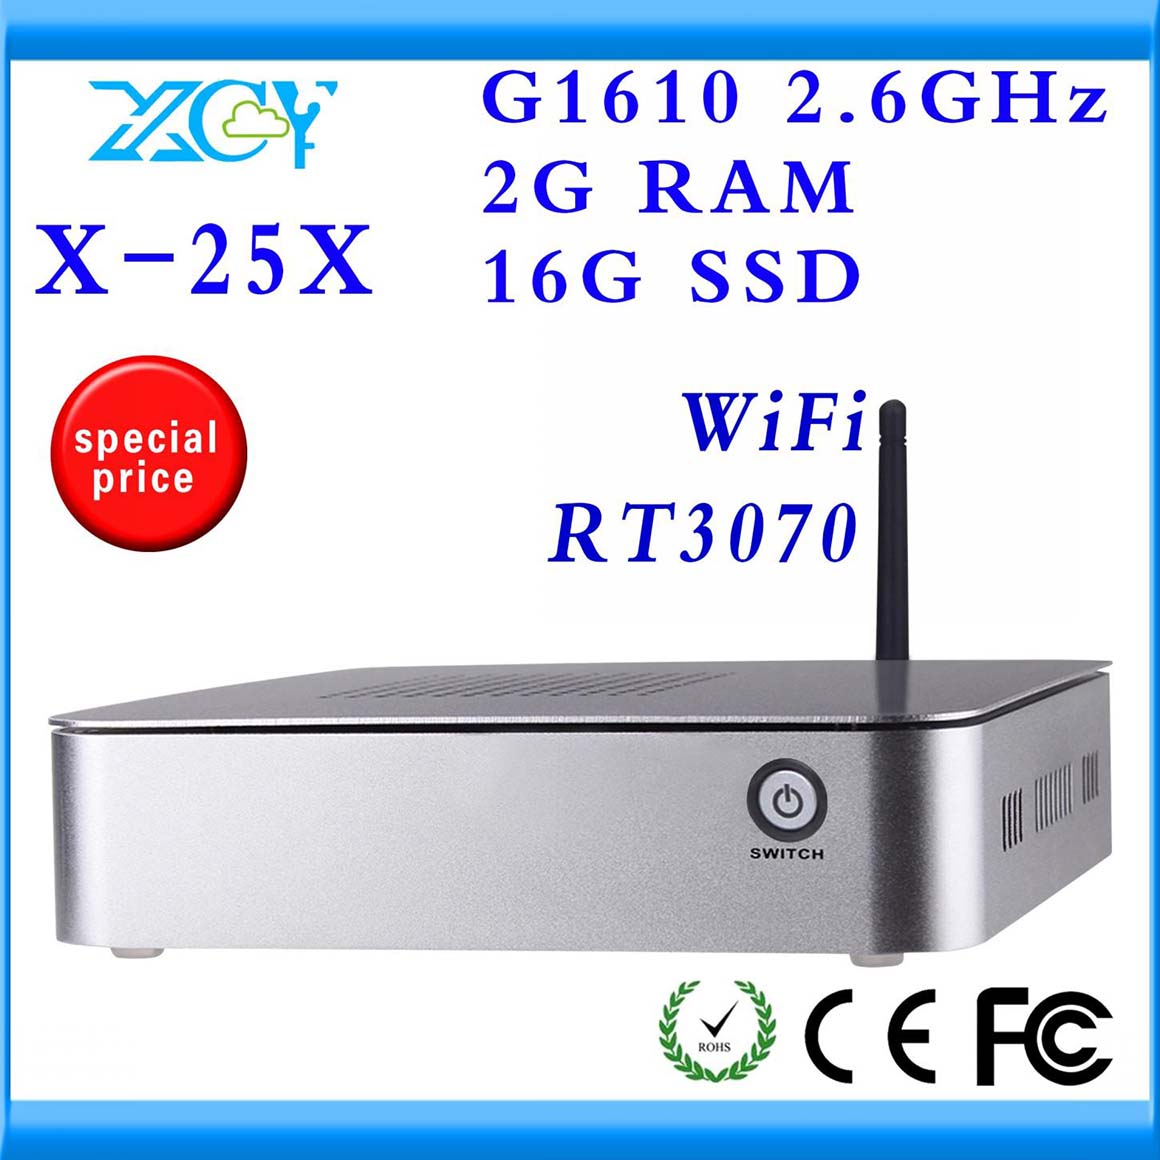 thin client cheap mini pc station computer network XCY X-25X INTEL H61 Chipset no noise and less heat(China (Mainland))